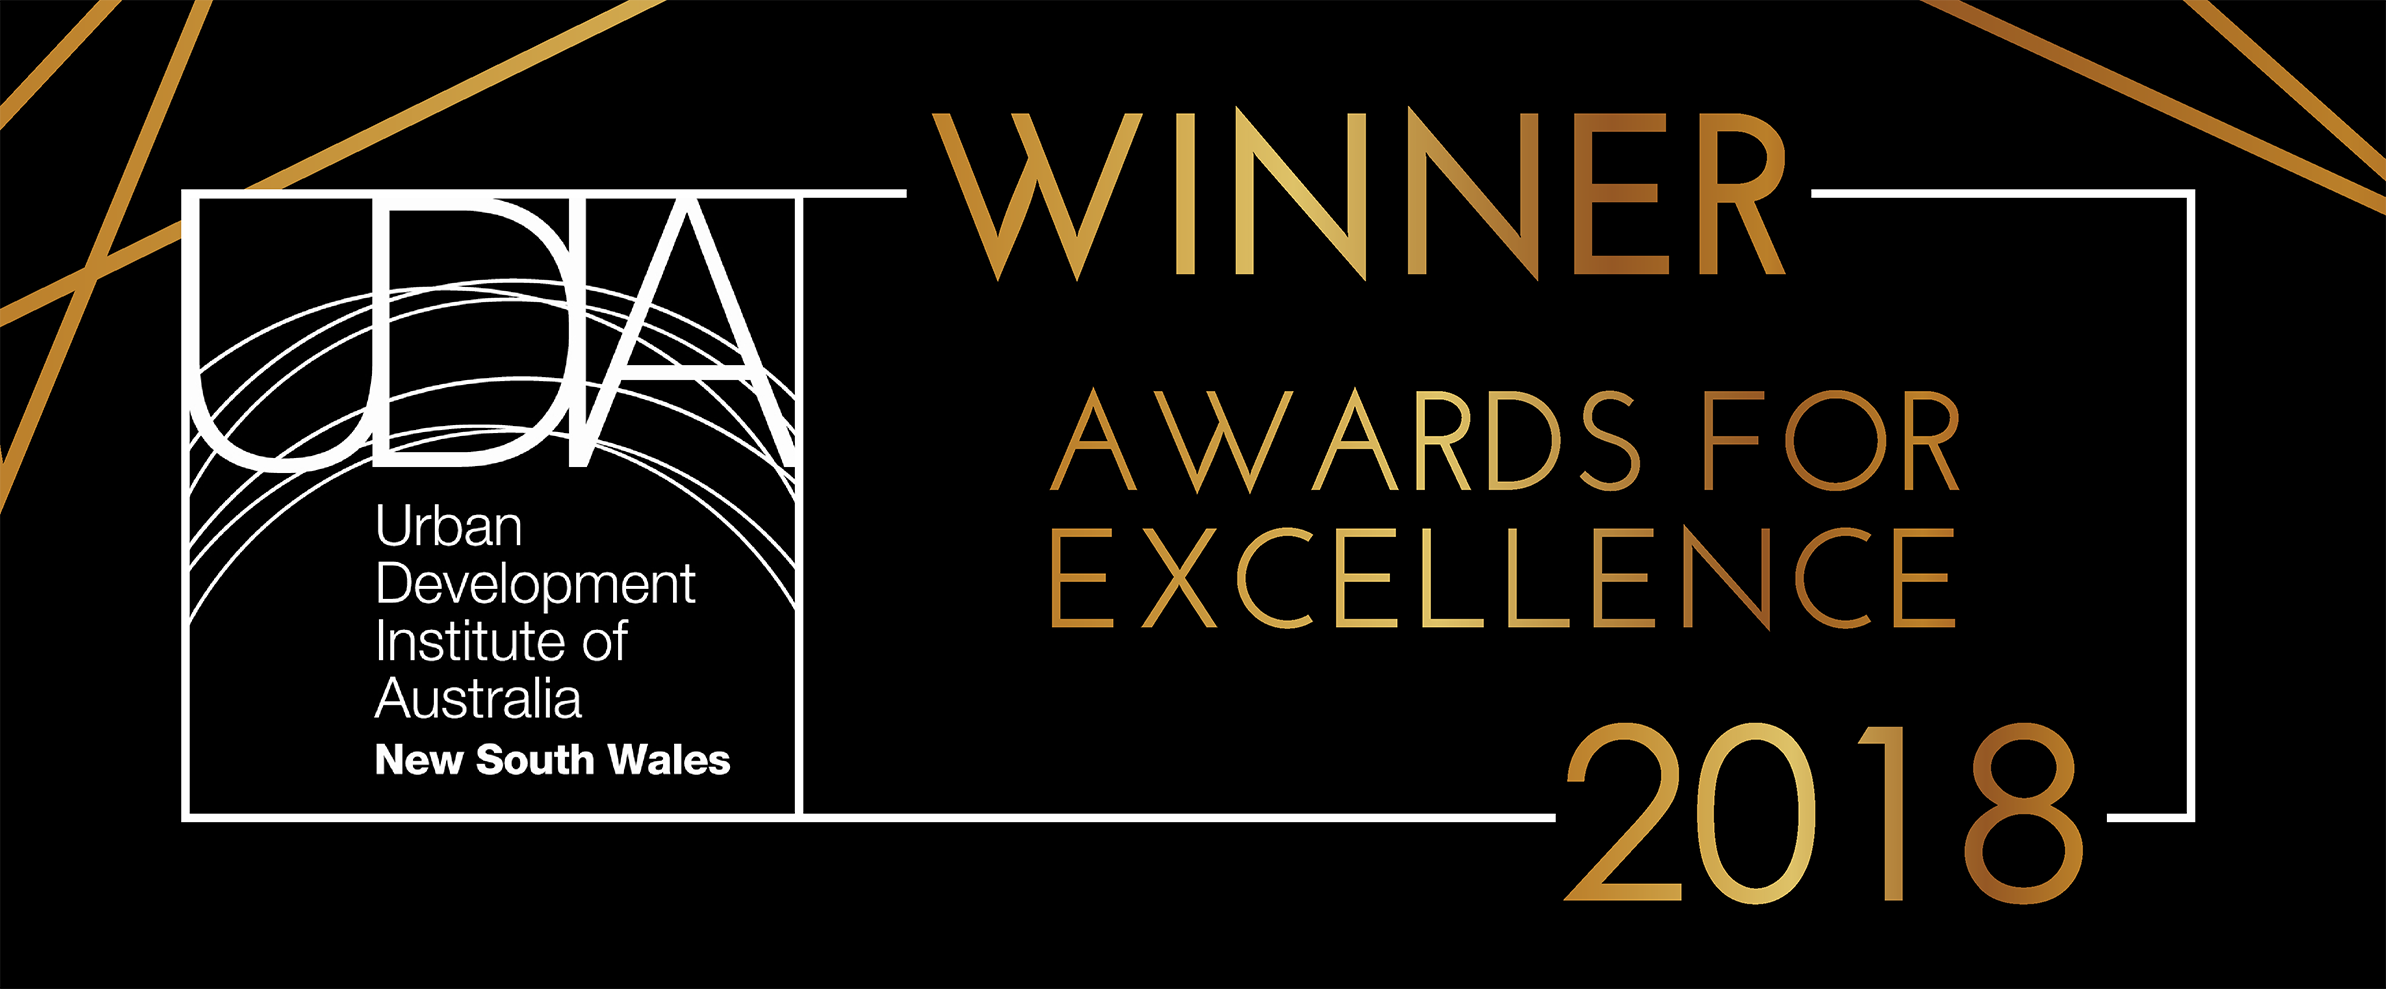 UDIA NSW Crown Group Awards for Excellence - Winner Banner_2386x989.png